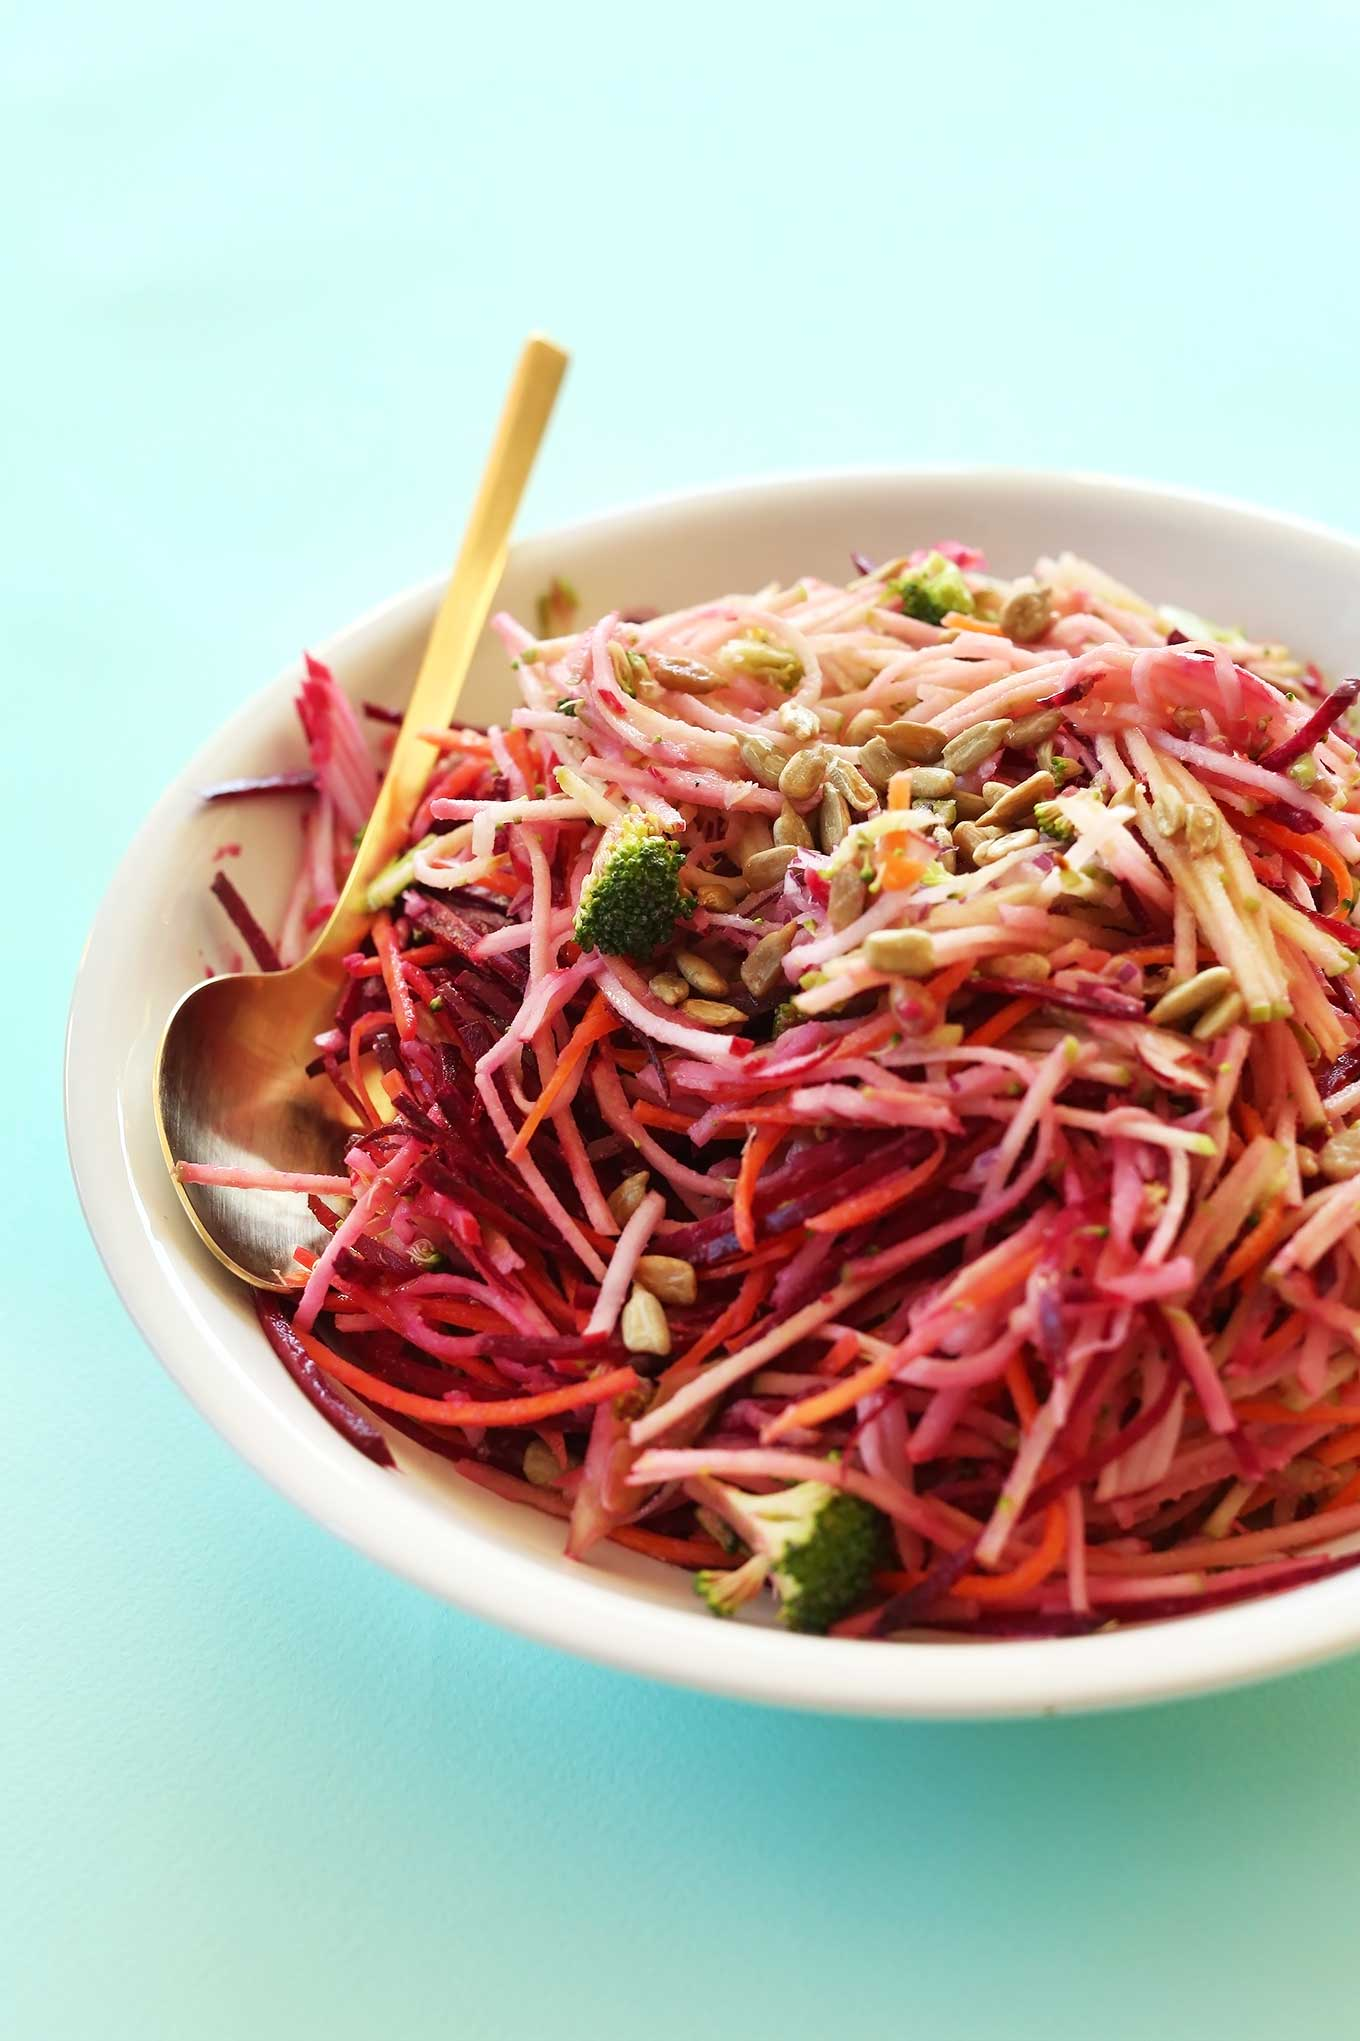 AMAZING Fall Slaw loaded with veggies and dressed in a simple tangy dressing #vegan #glutenfree #minimalistbaker